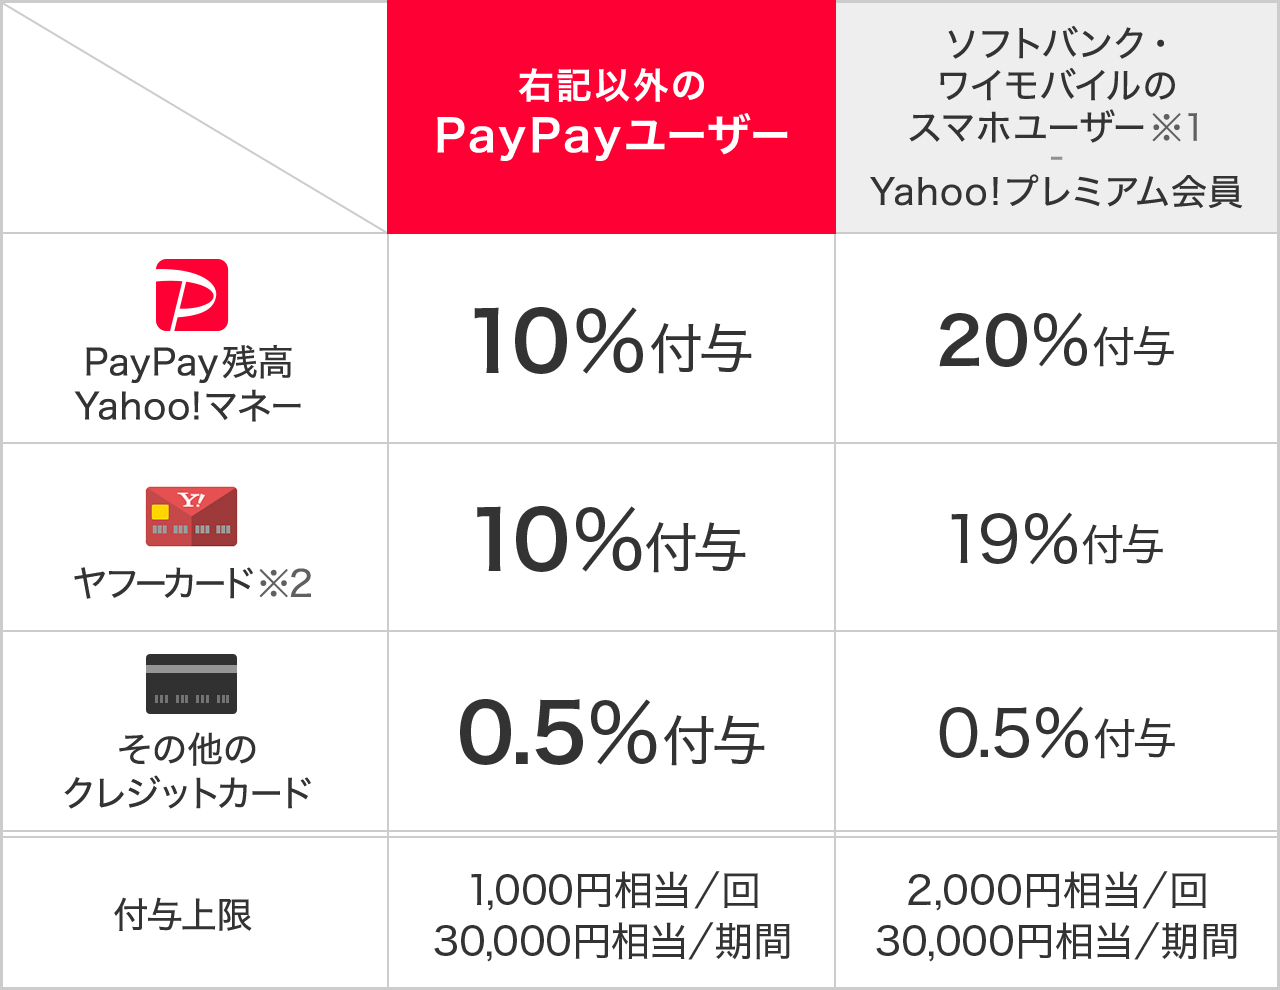 https://image.paypay.ne.jp/page/notice/entry/20190605/02/img_table_01.jpg